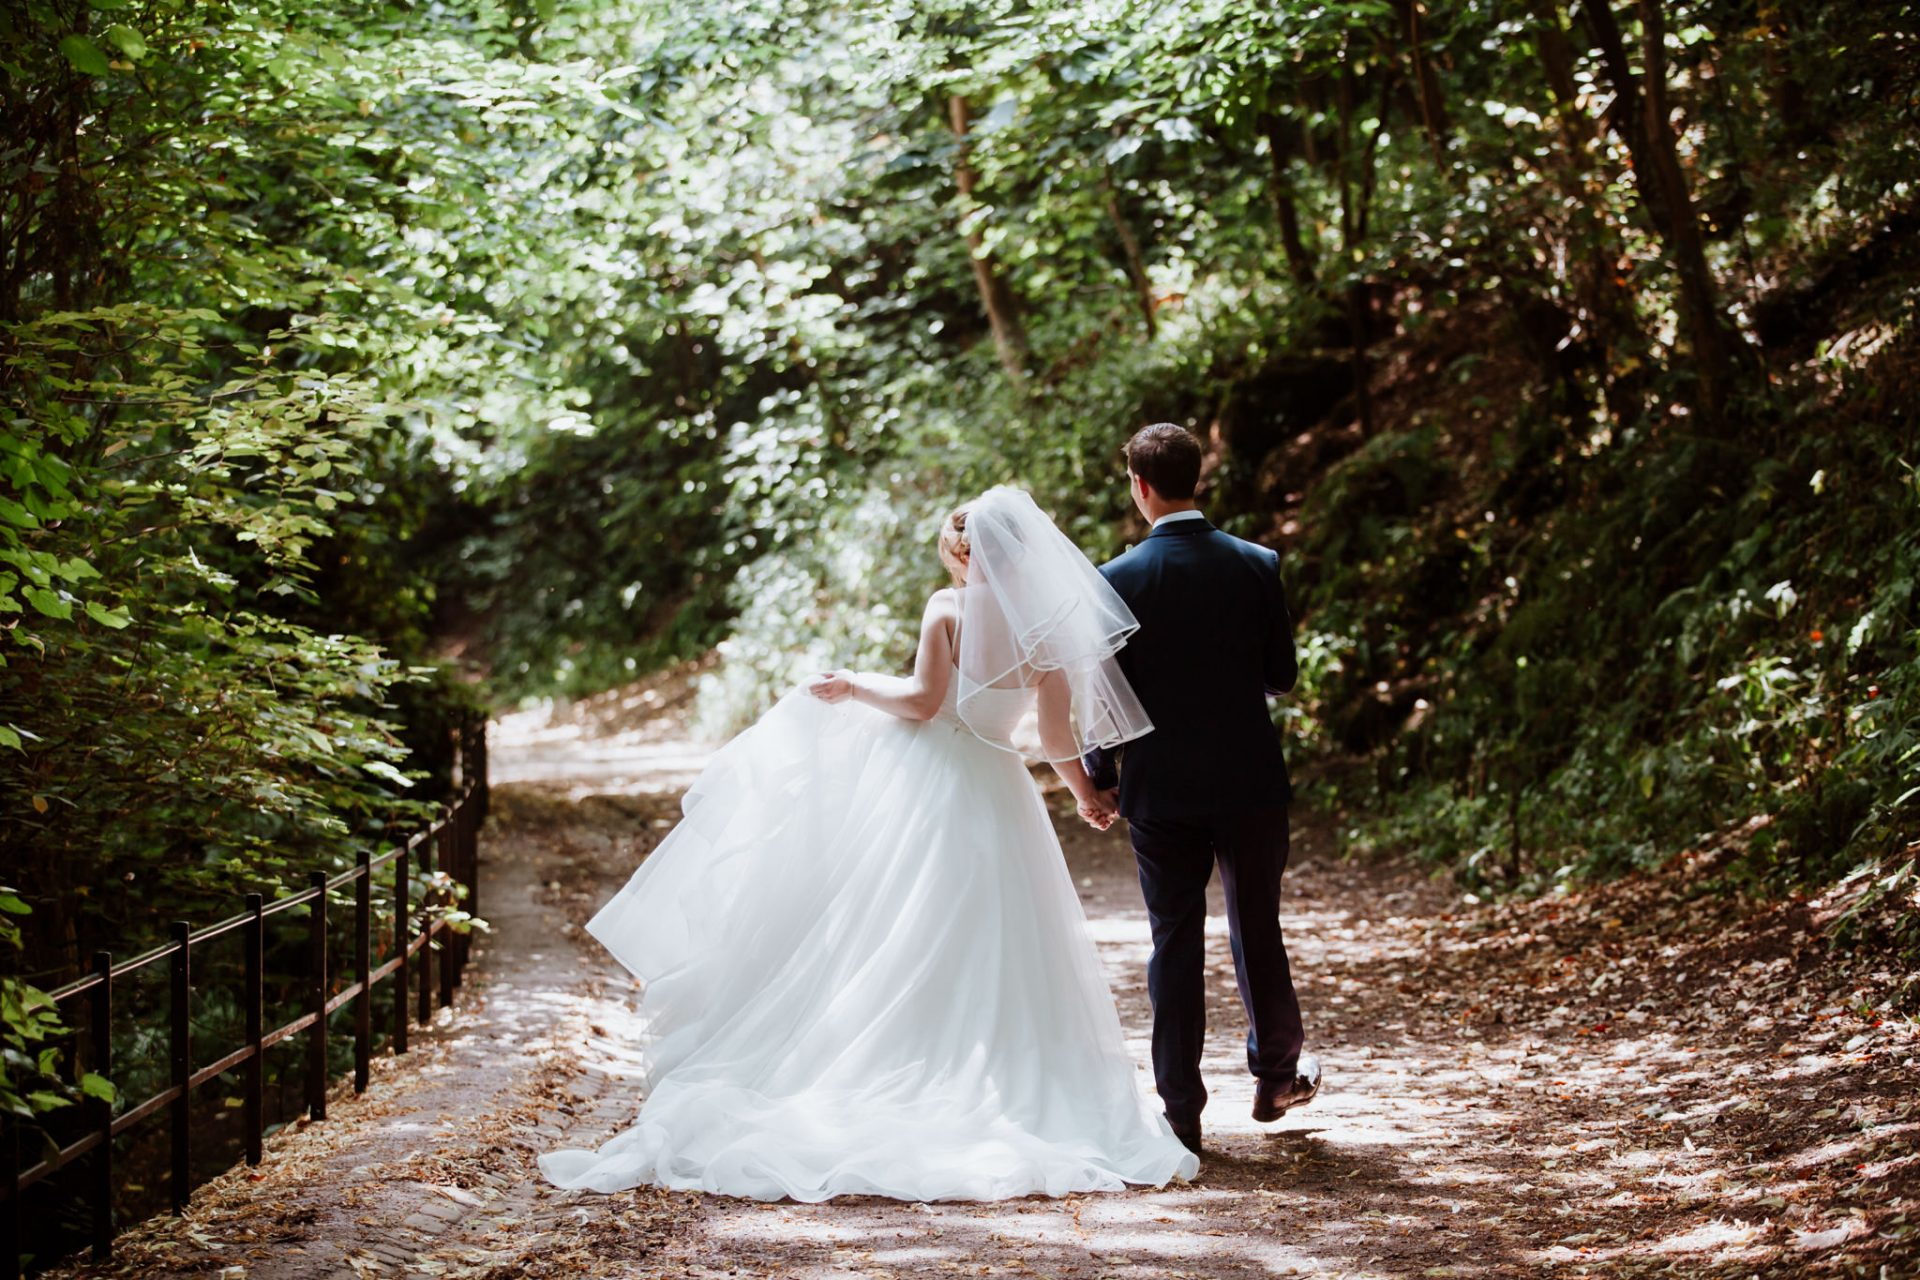 bride and groom dancing through the forest path